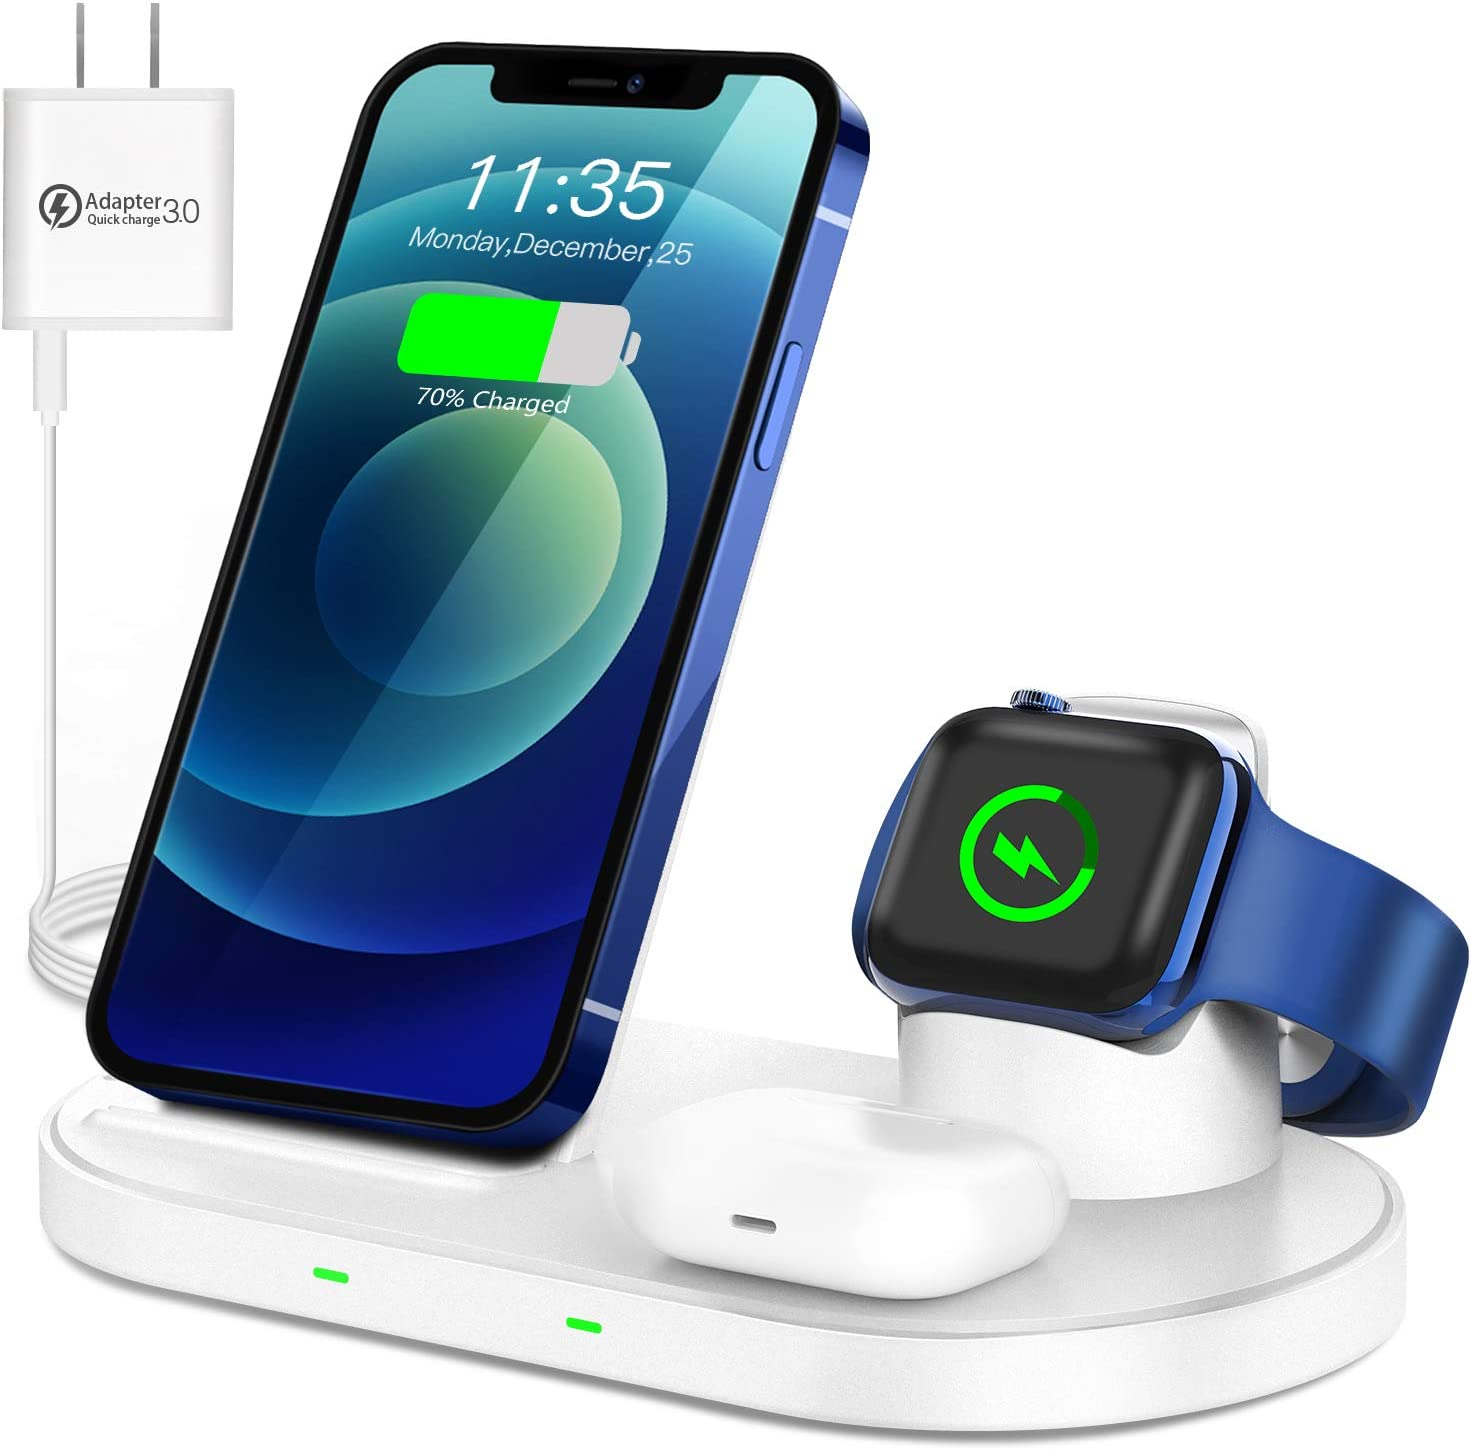 WAITIEE Wireless Charger 3 in 1 Stand for iPhone 12 and iWatch Series 6/5/4/3/2/1 AirPods pro, 15W Fast Charging Dock Accessories for iPhone 12/11/11 Pro/ 11 Pro Max/XS/XR/X/8/8 Plus QI Phone